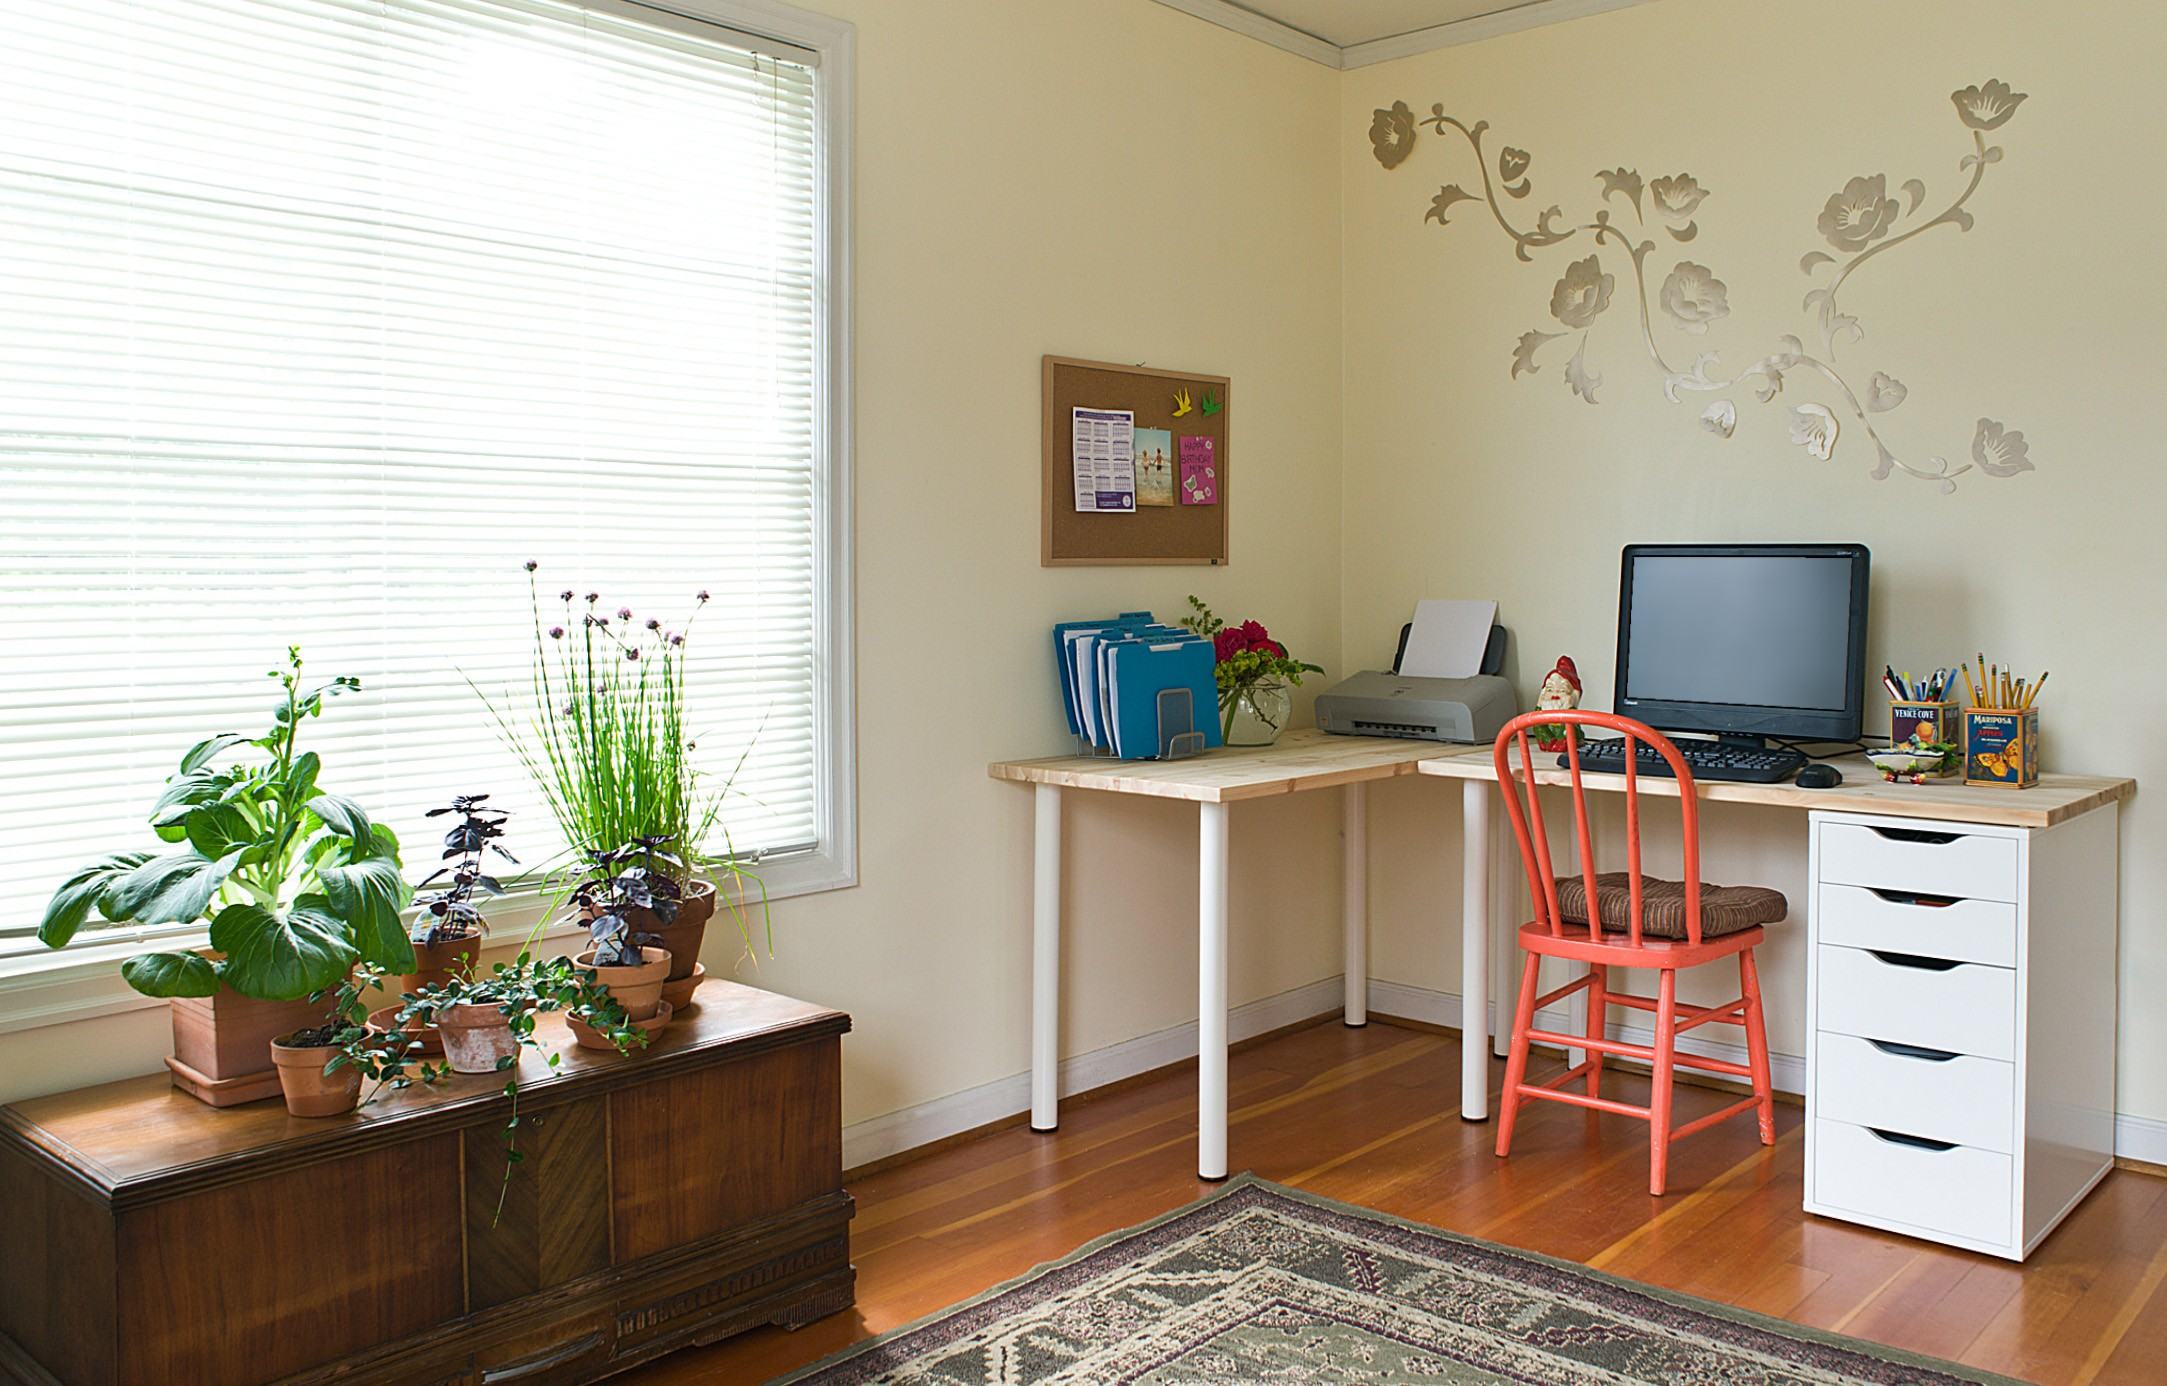 organizing your home office. On Friday Organizing Your Home Office Z